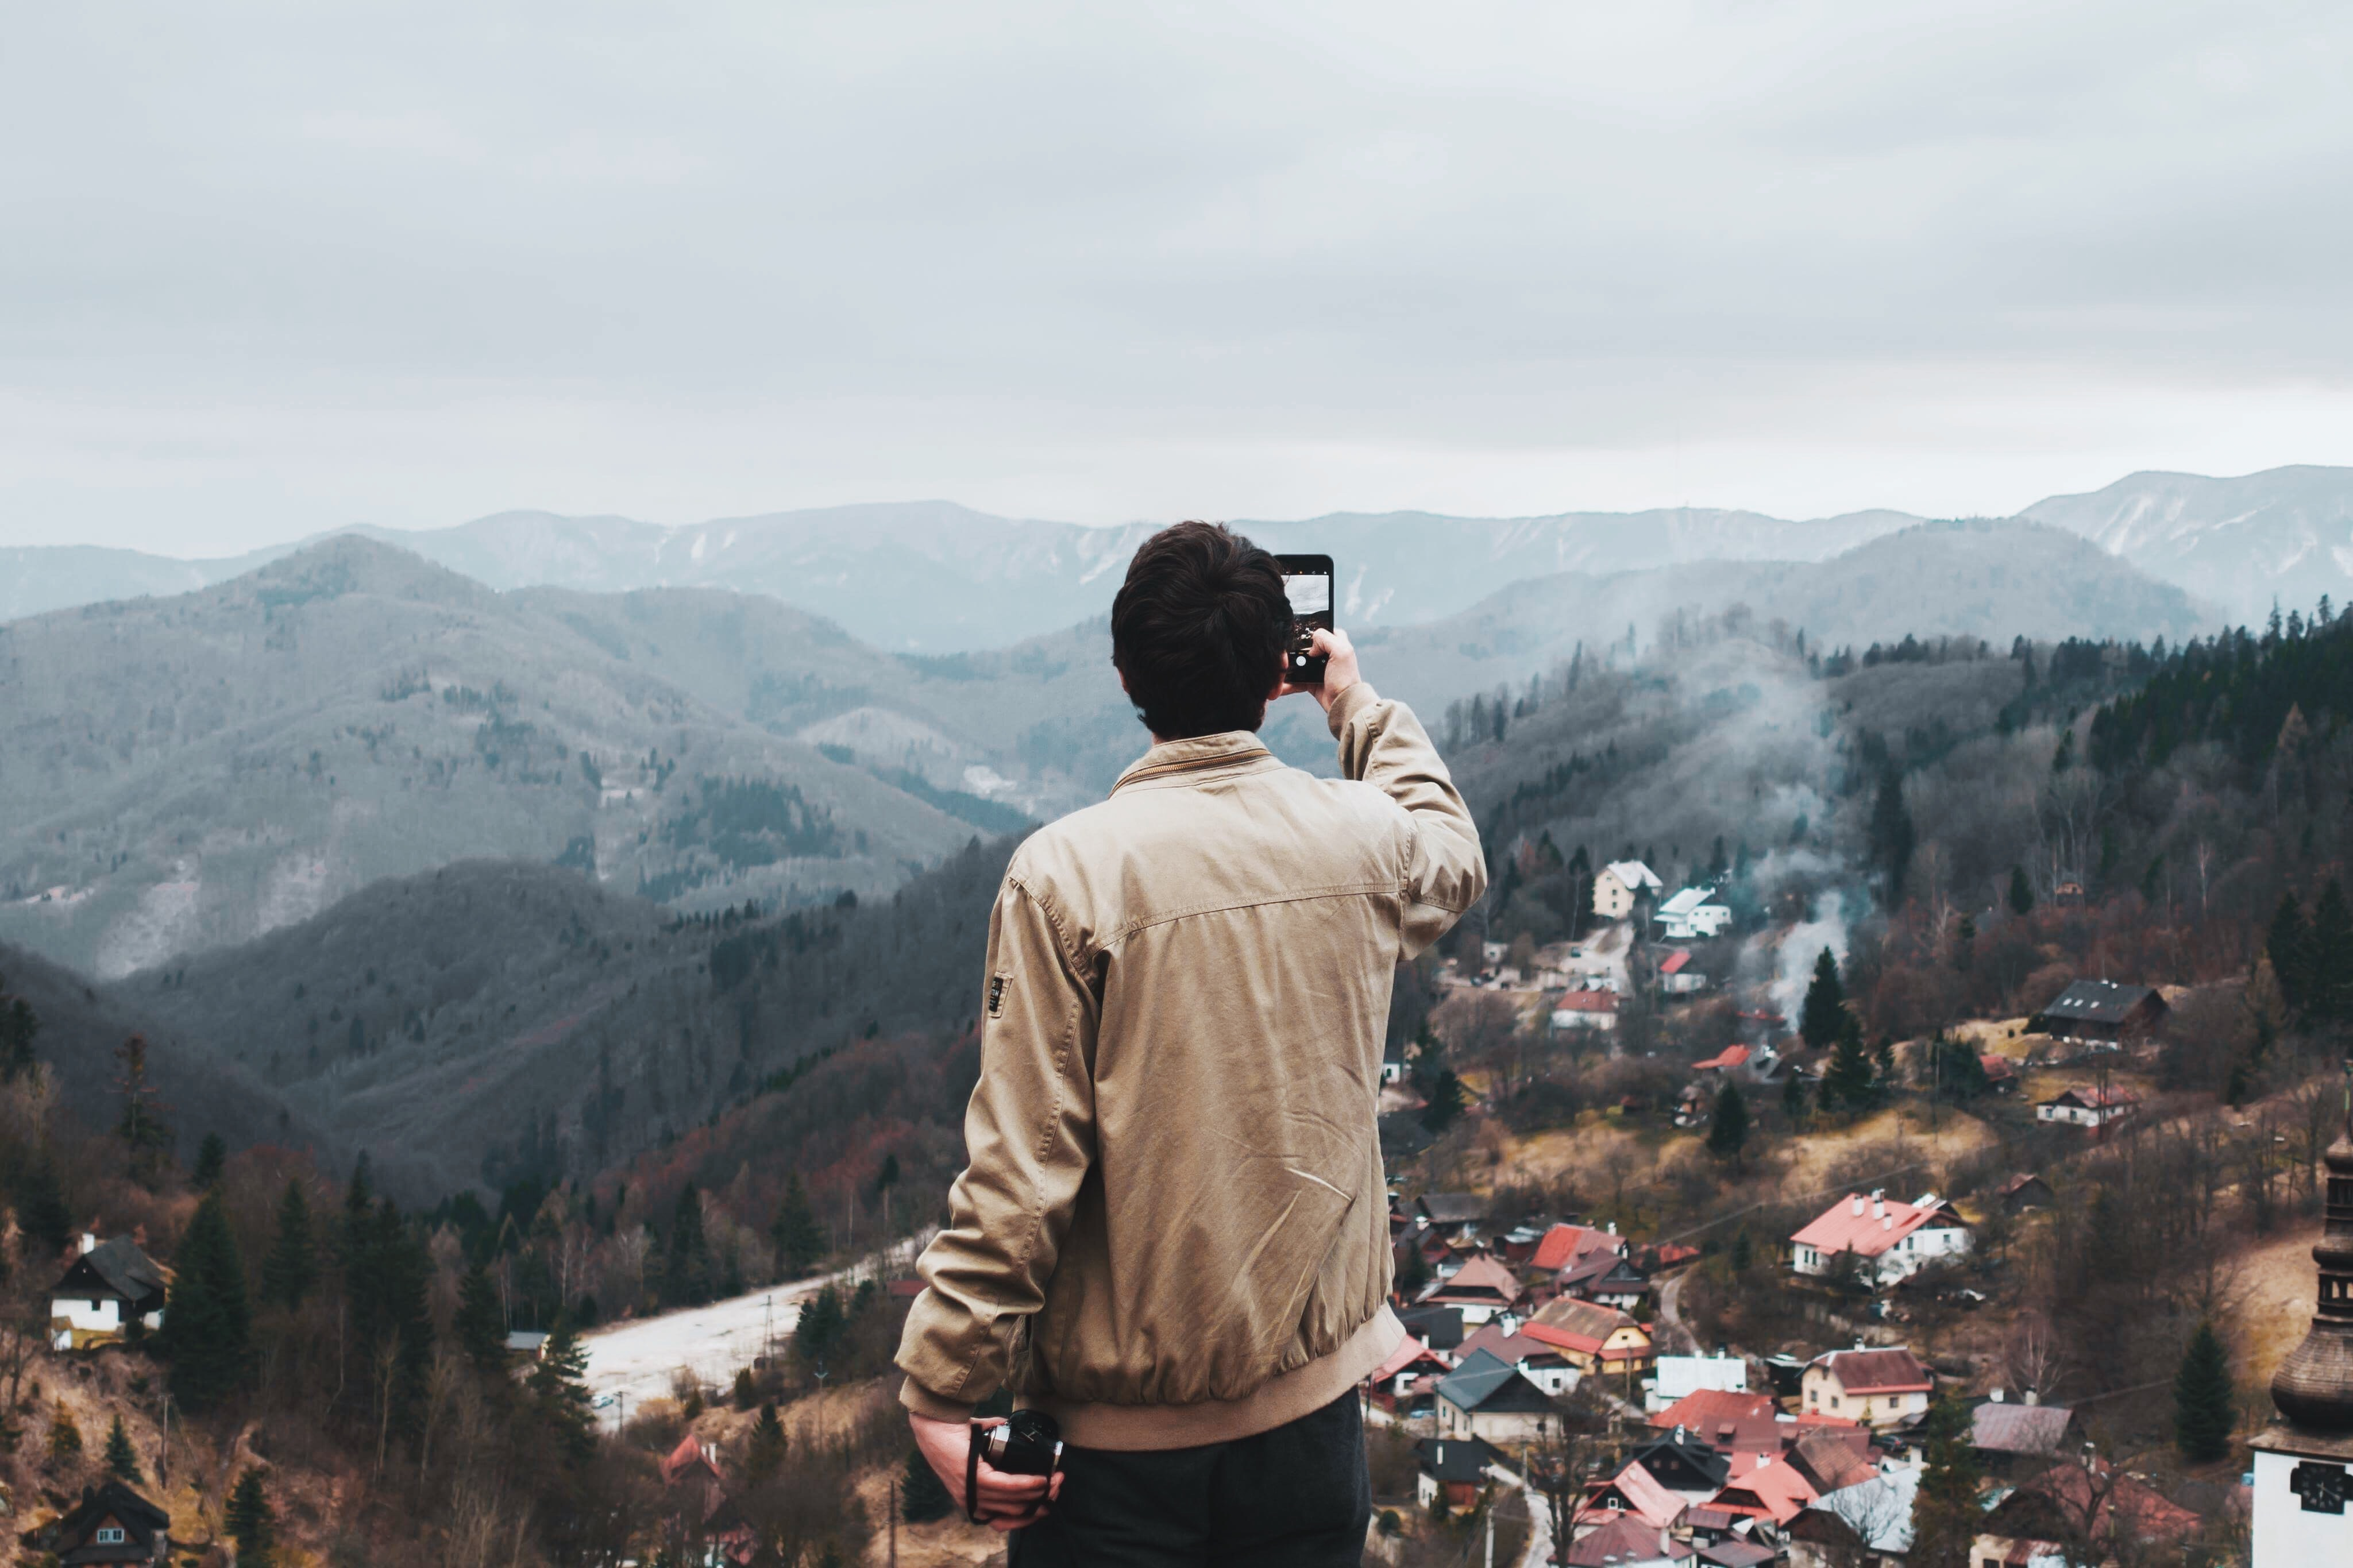 man taking a photo of city